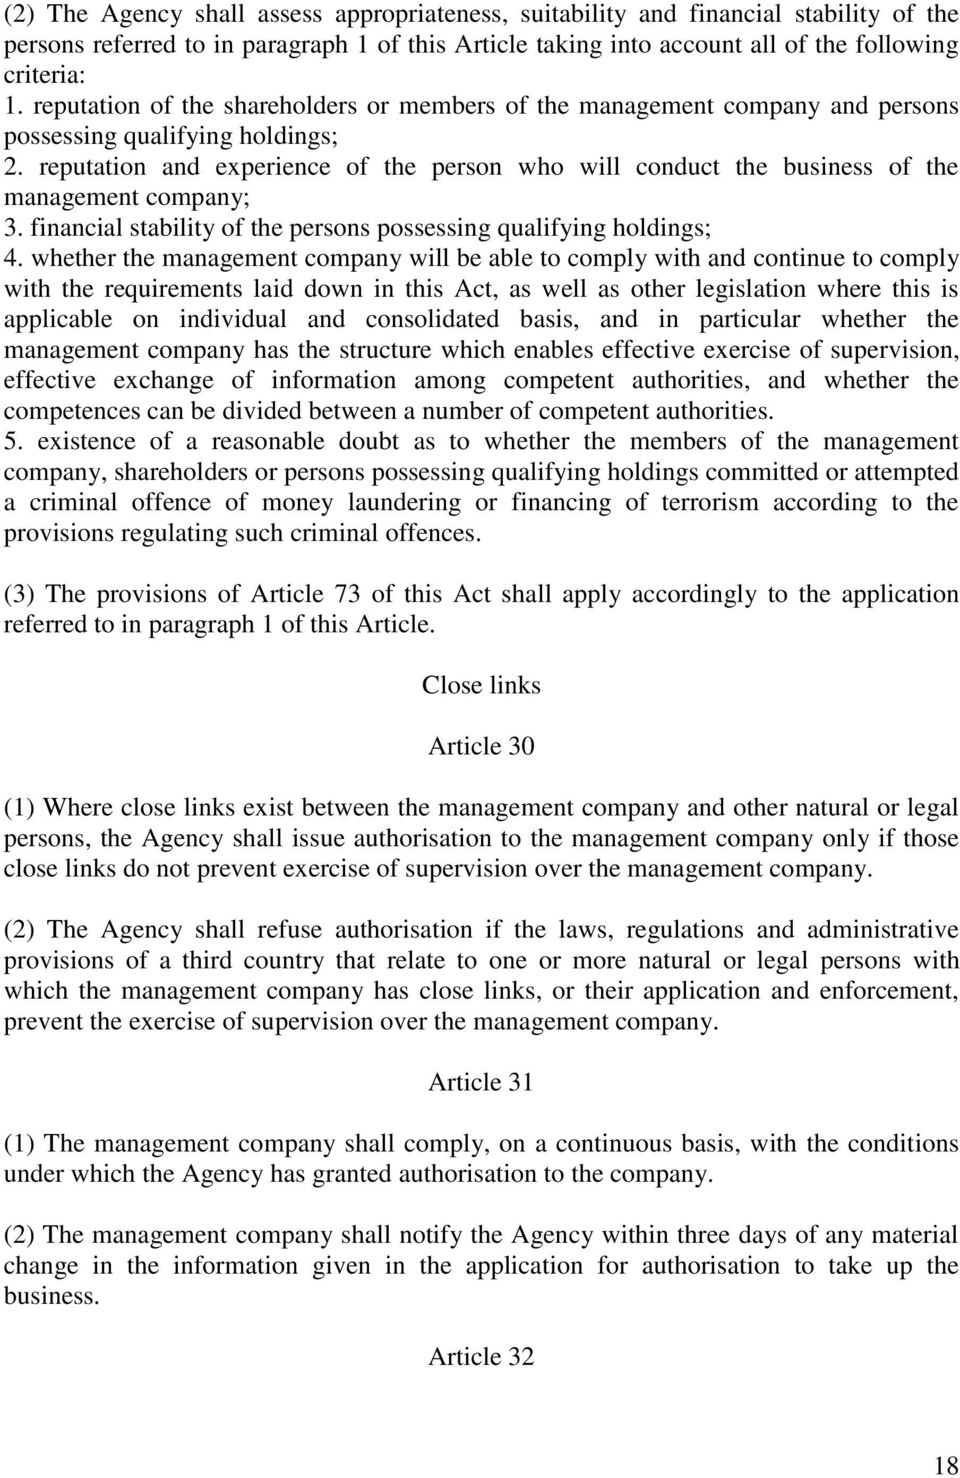 reputation and experience of the person who will conduct the business of the management company; 3. financial stability of the persons possessing qualifying holdings; 4.